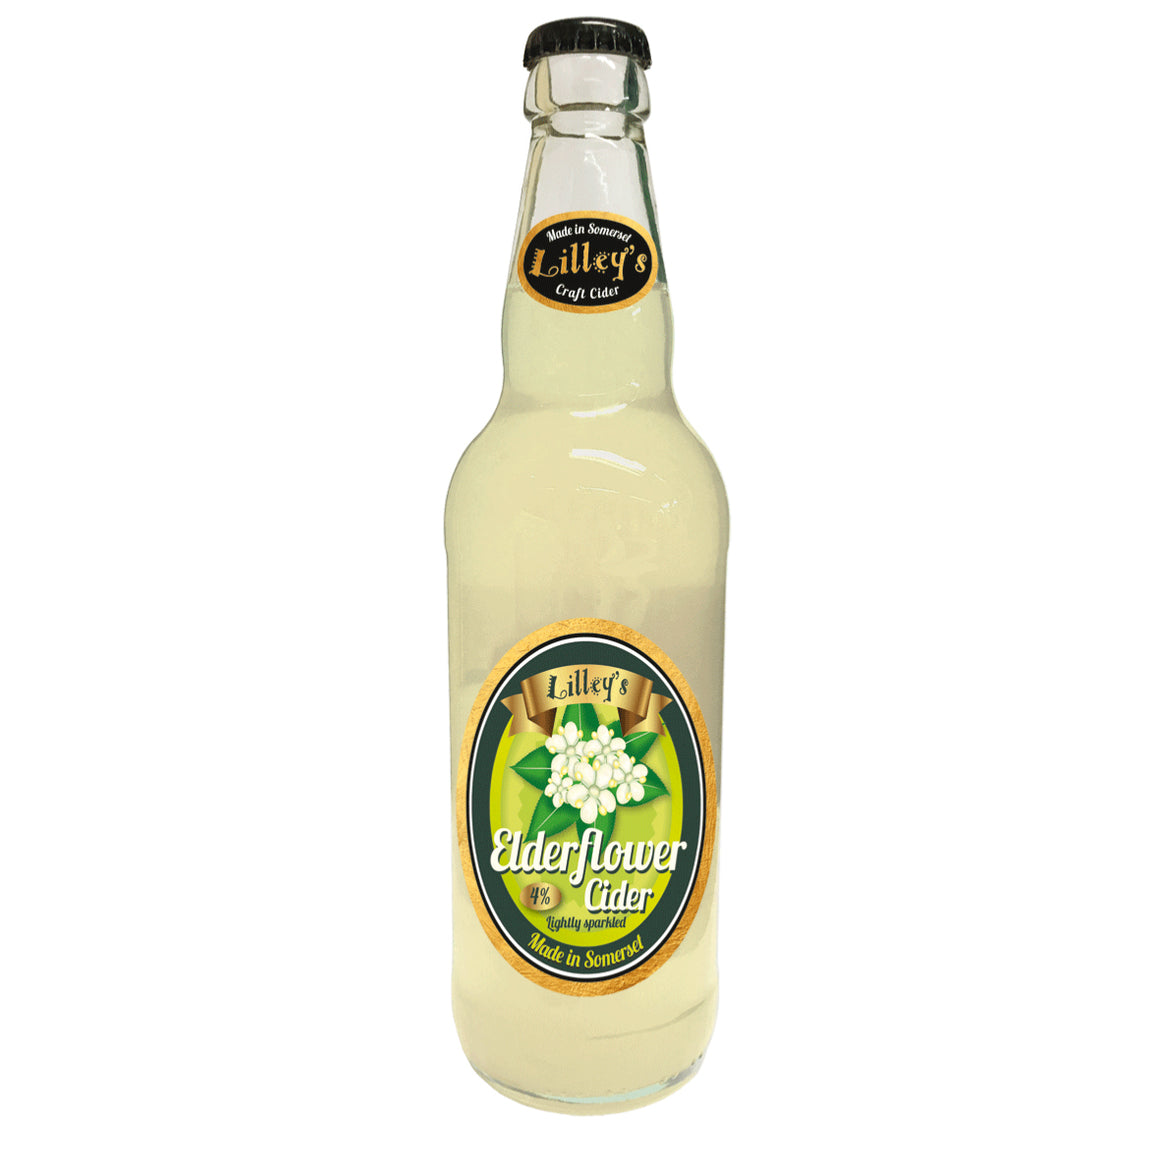 Lilleys Cider - Elderflower - 500ml Bottle